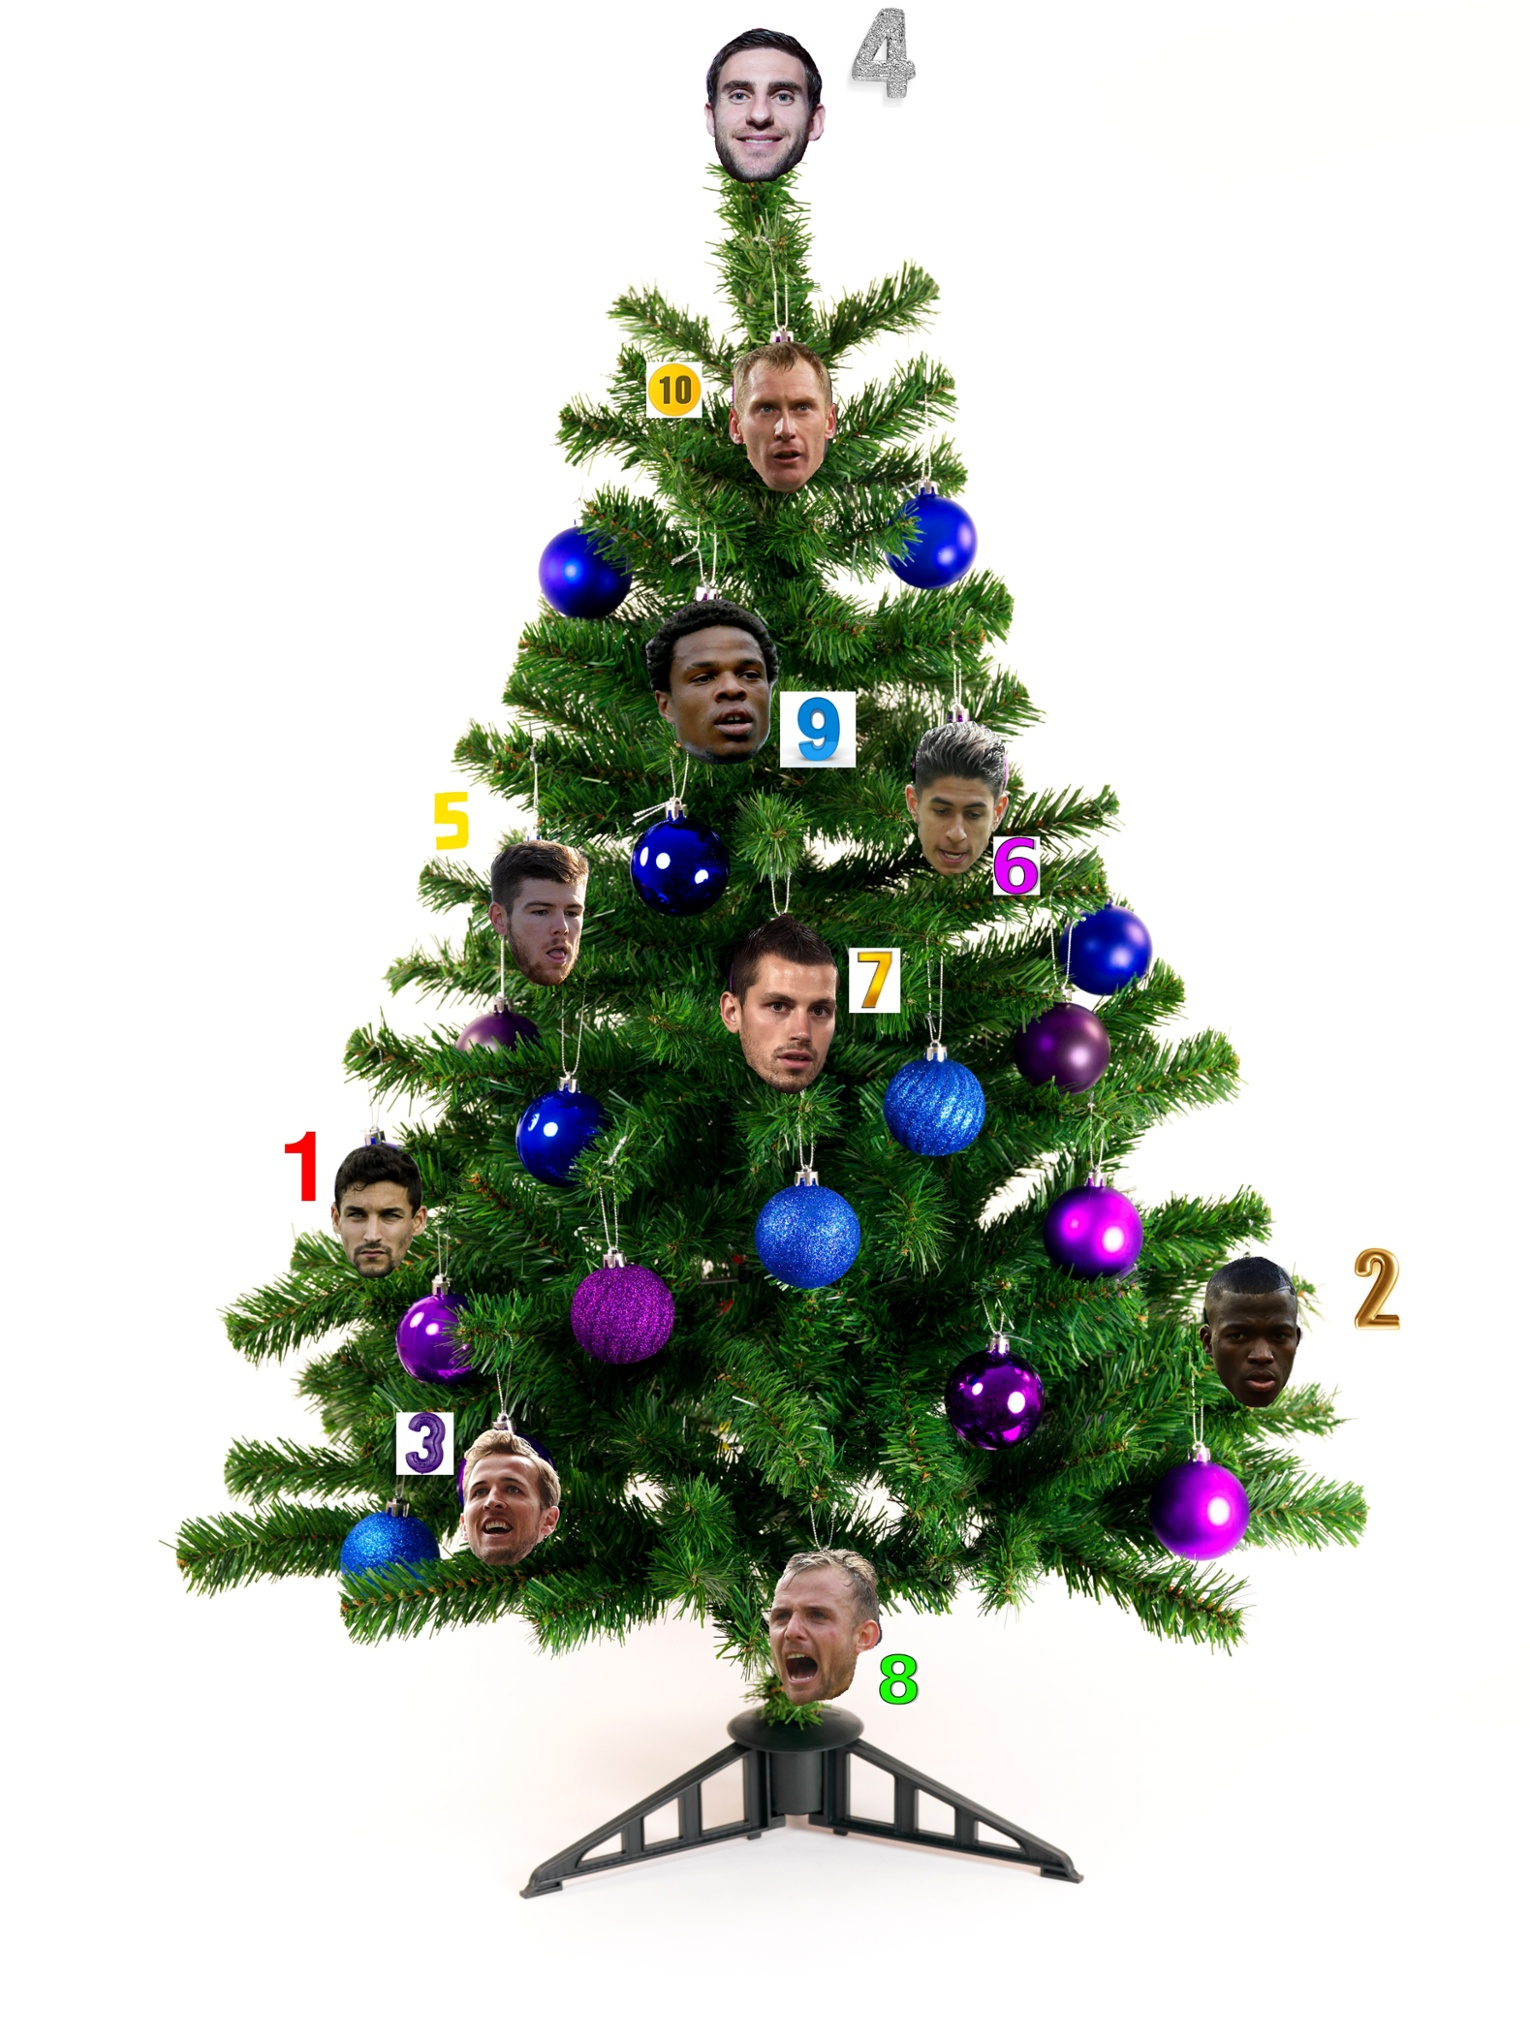 Football quiz: name the Premier League players on the Christmas tree : Global : The Guardian